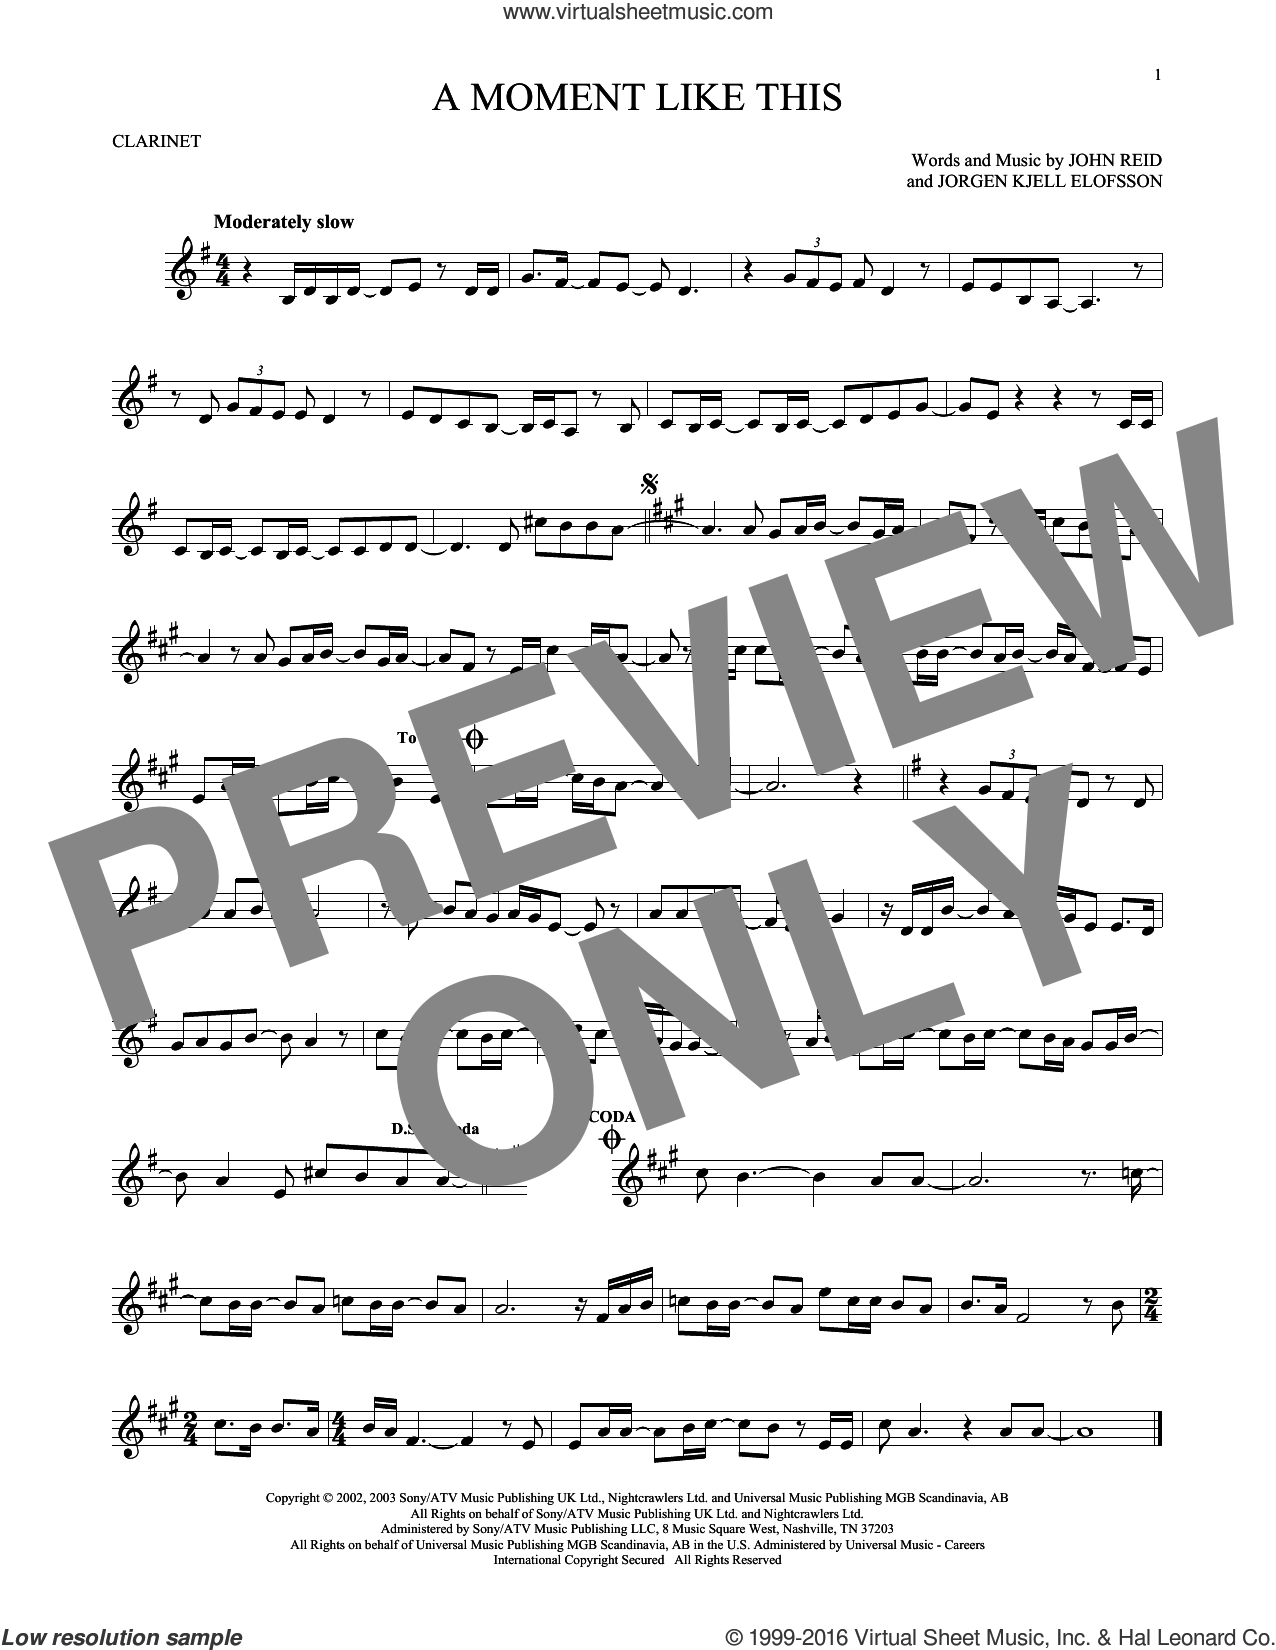 A Moment Like This sheet music for clarinet solo by Kelly Clarkson, John Reid and Jorgen Elofsson, intermediate skill level